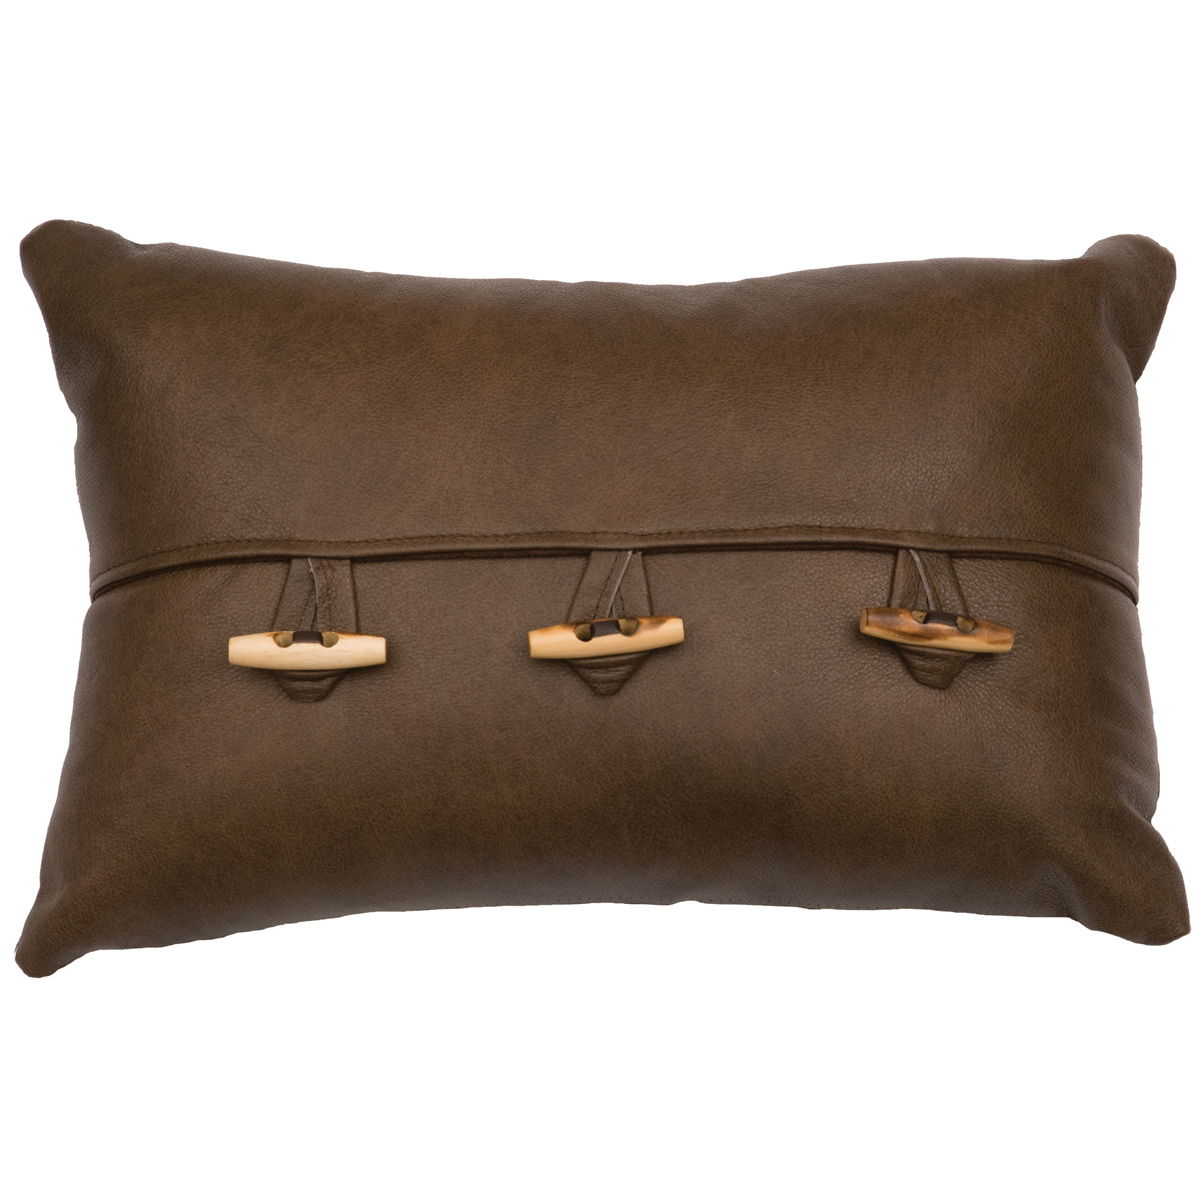 Caribou Leather Flap Pillow with Toggle Buttons - Fabric Back